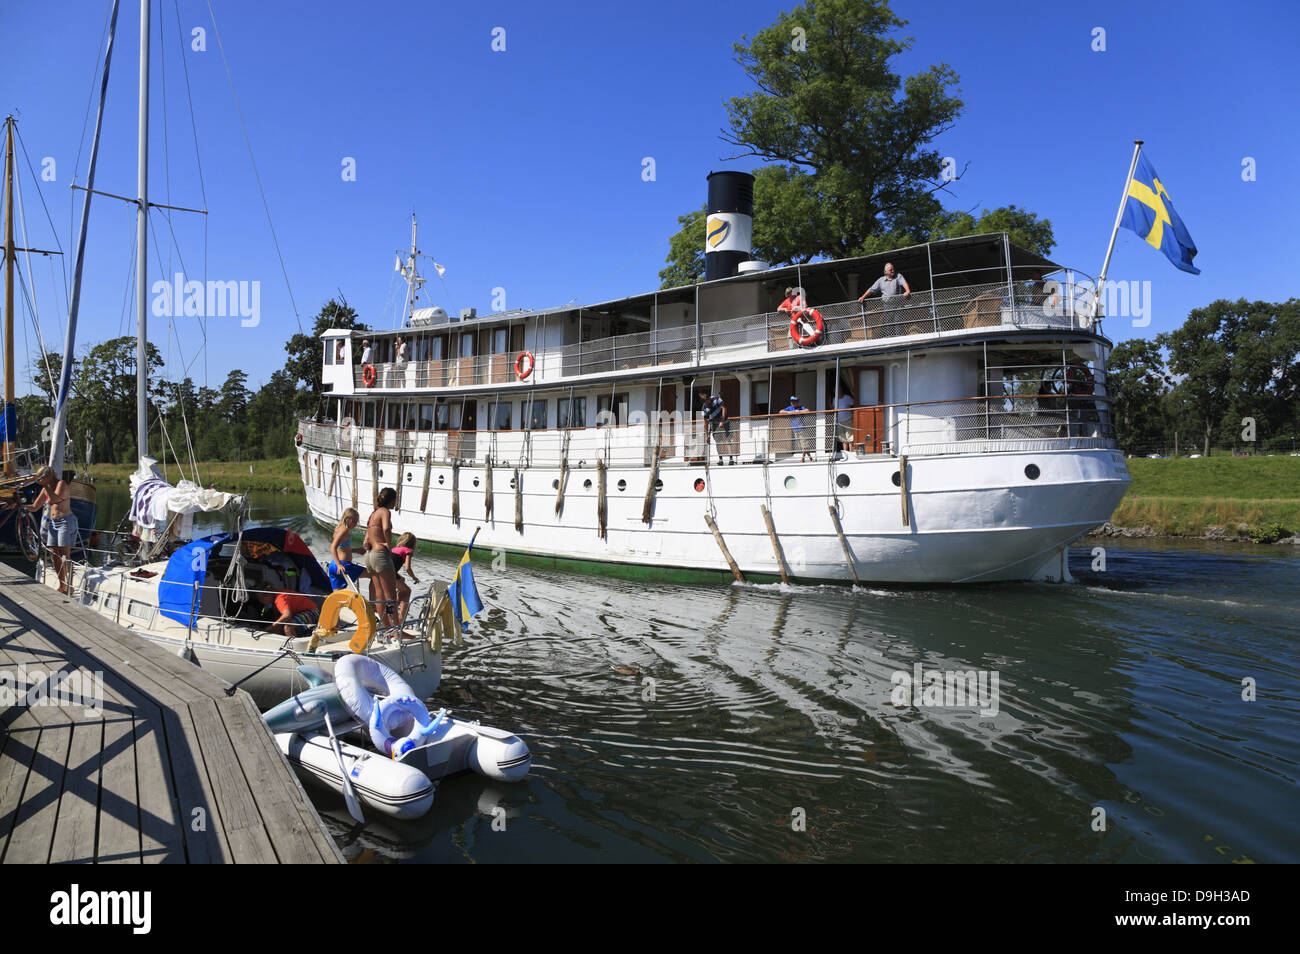 Old passenger steamship DIANA on the Gota Canal at Borensberg, Sweden, Scandinavia - Stock Image